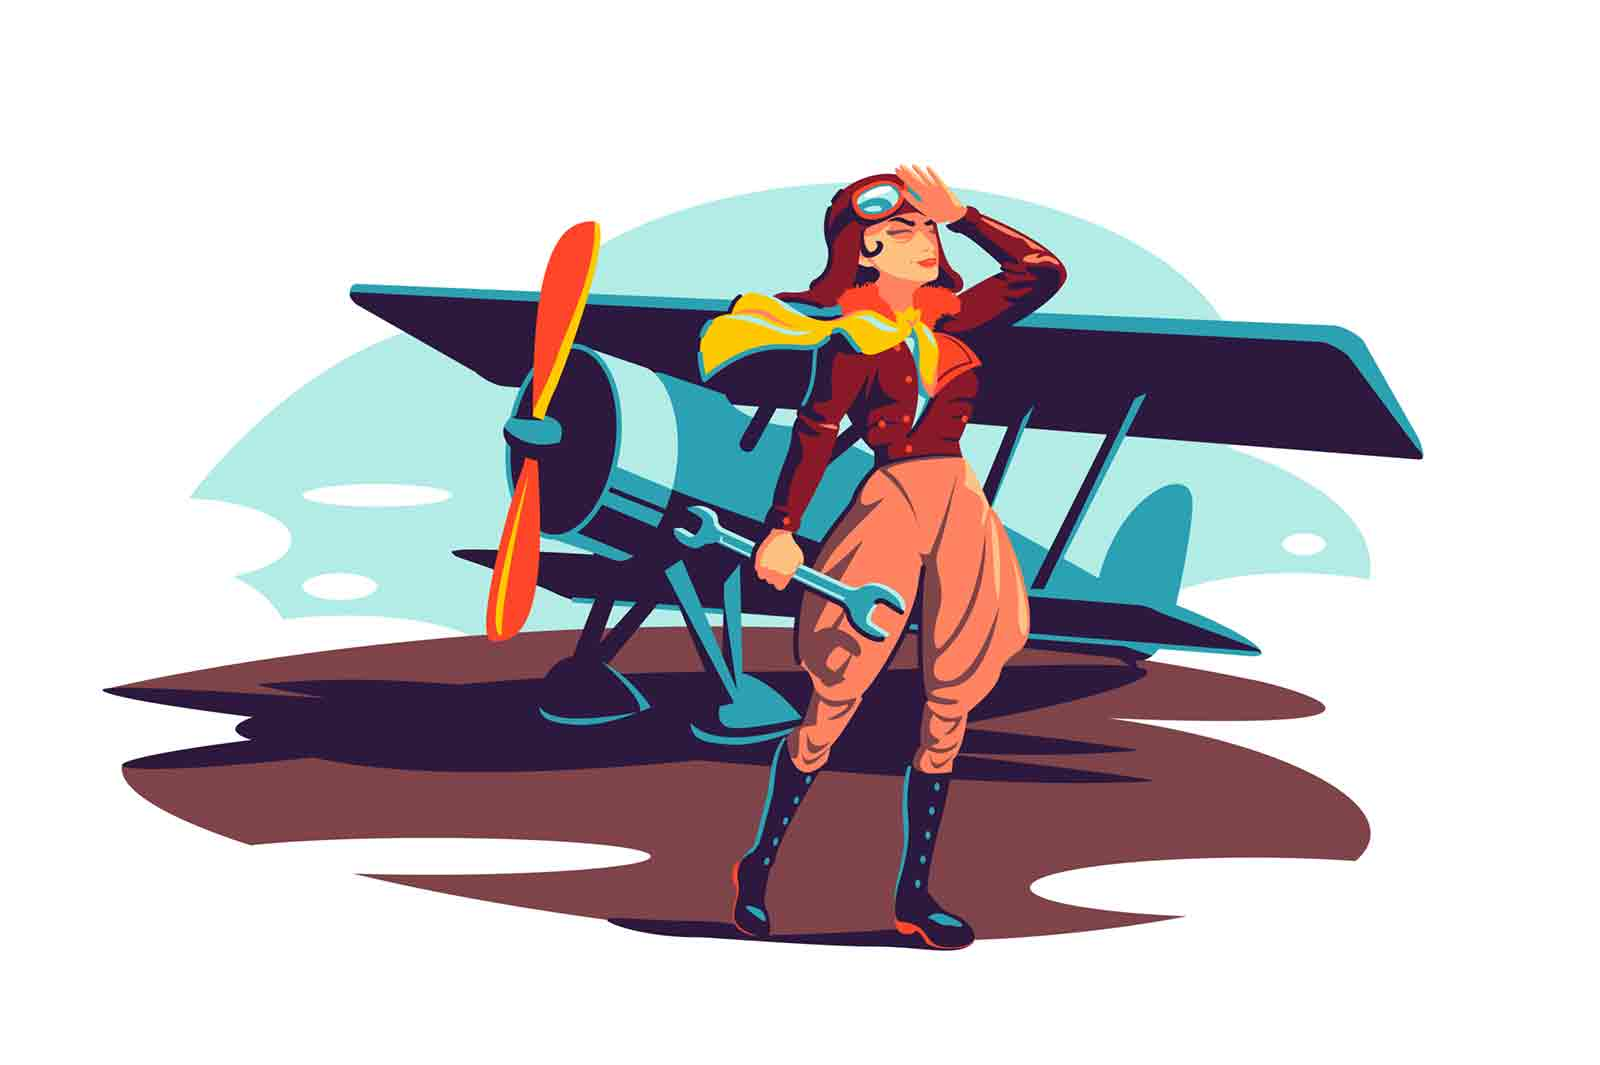 Female aviator holding wrench instrument vector illustration. Woman pilot in costume flat style. Repair airplane with tool. Pilot occupation, aircraft concept. Isolated on white background